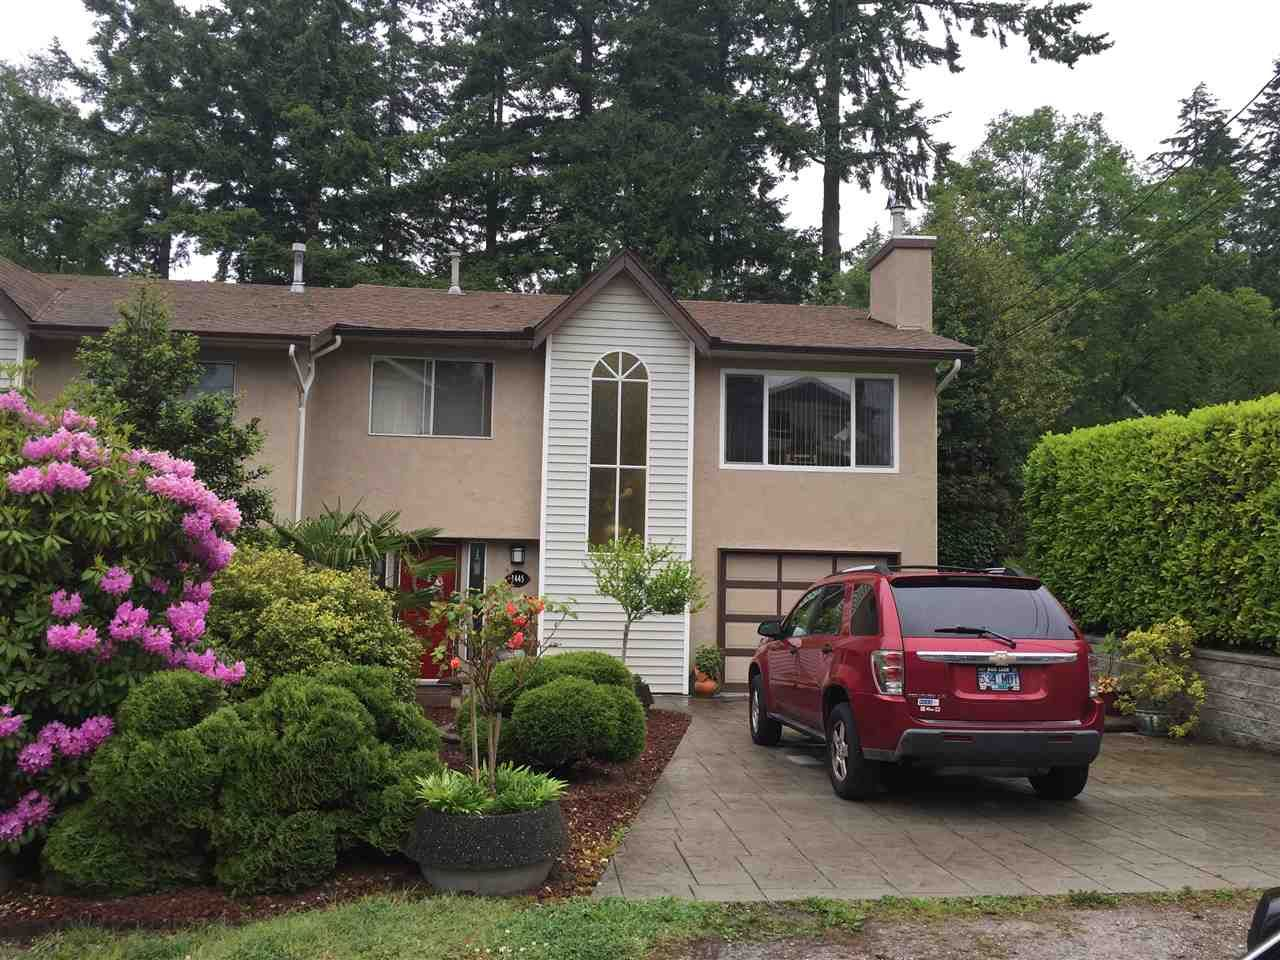 Main Photo: 1445 VIDAL Street: White Rock 1/2 Duplex for sale (South Surrey White Rock)  : MLS®# R2171728